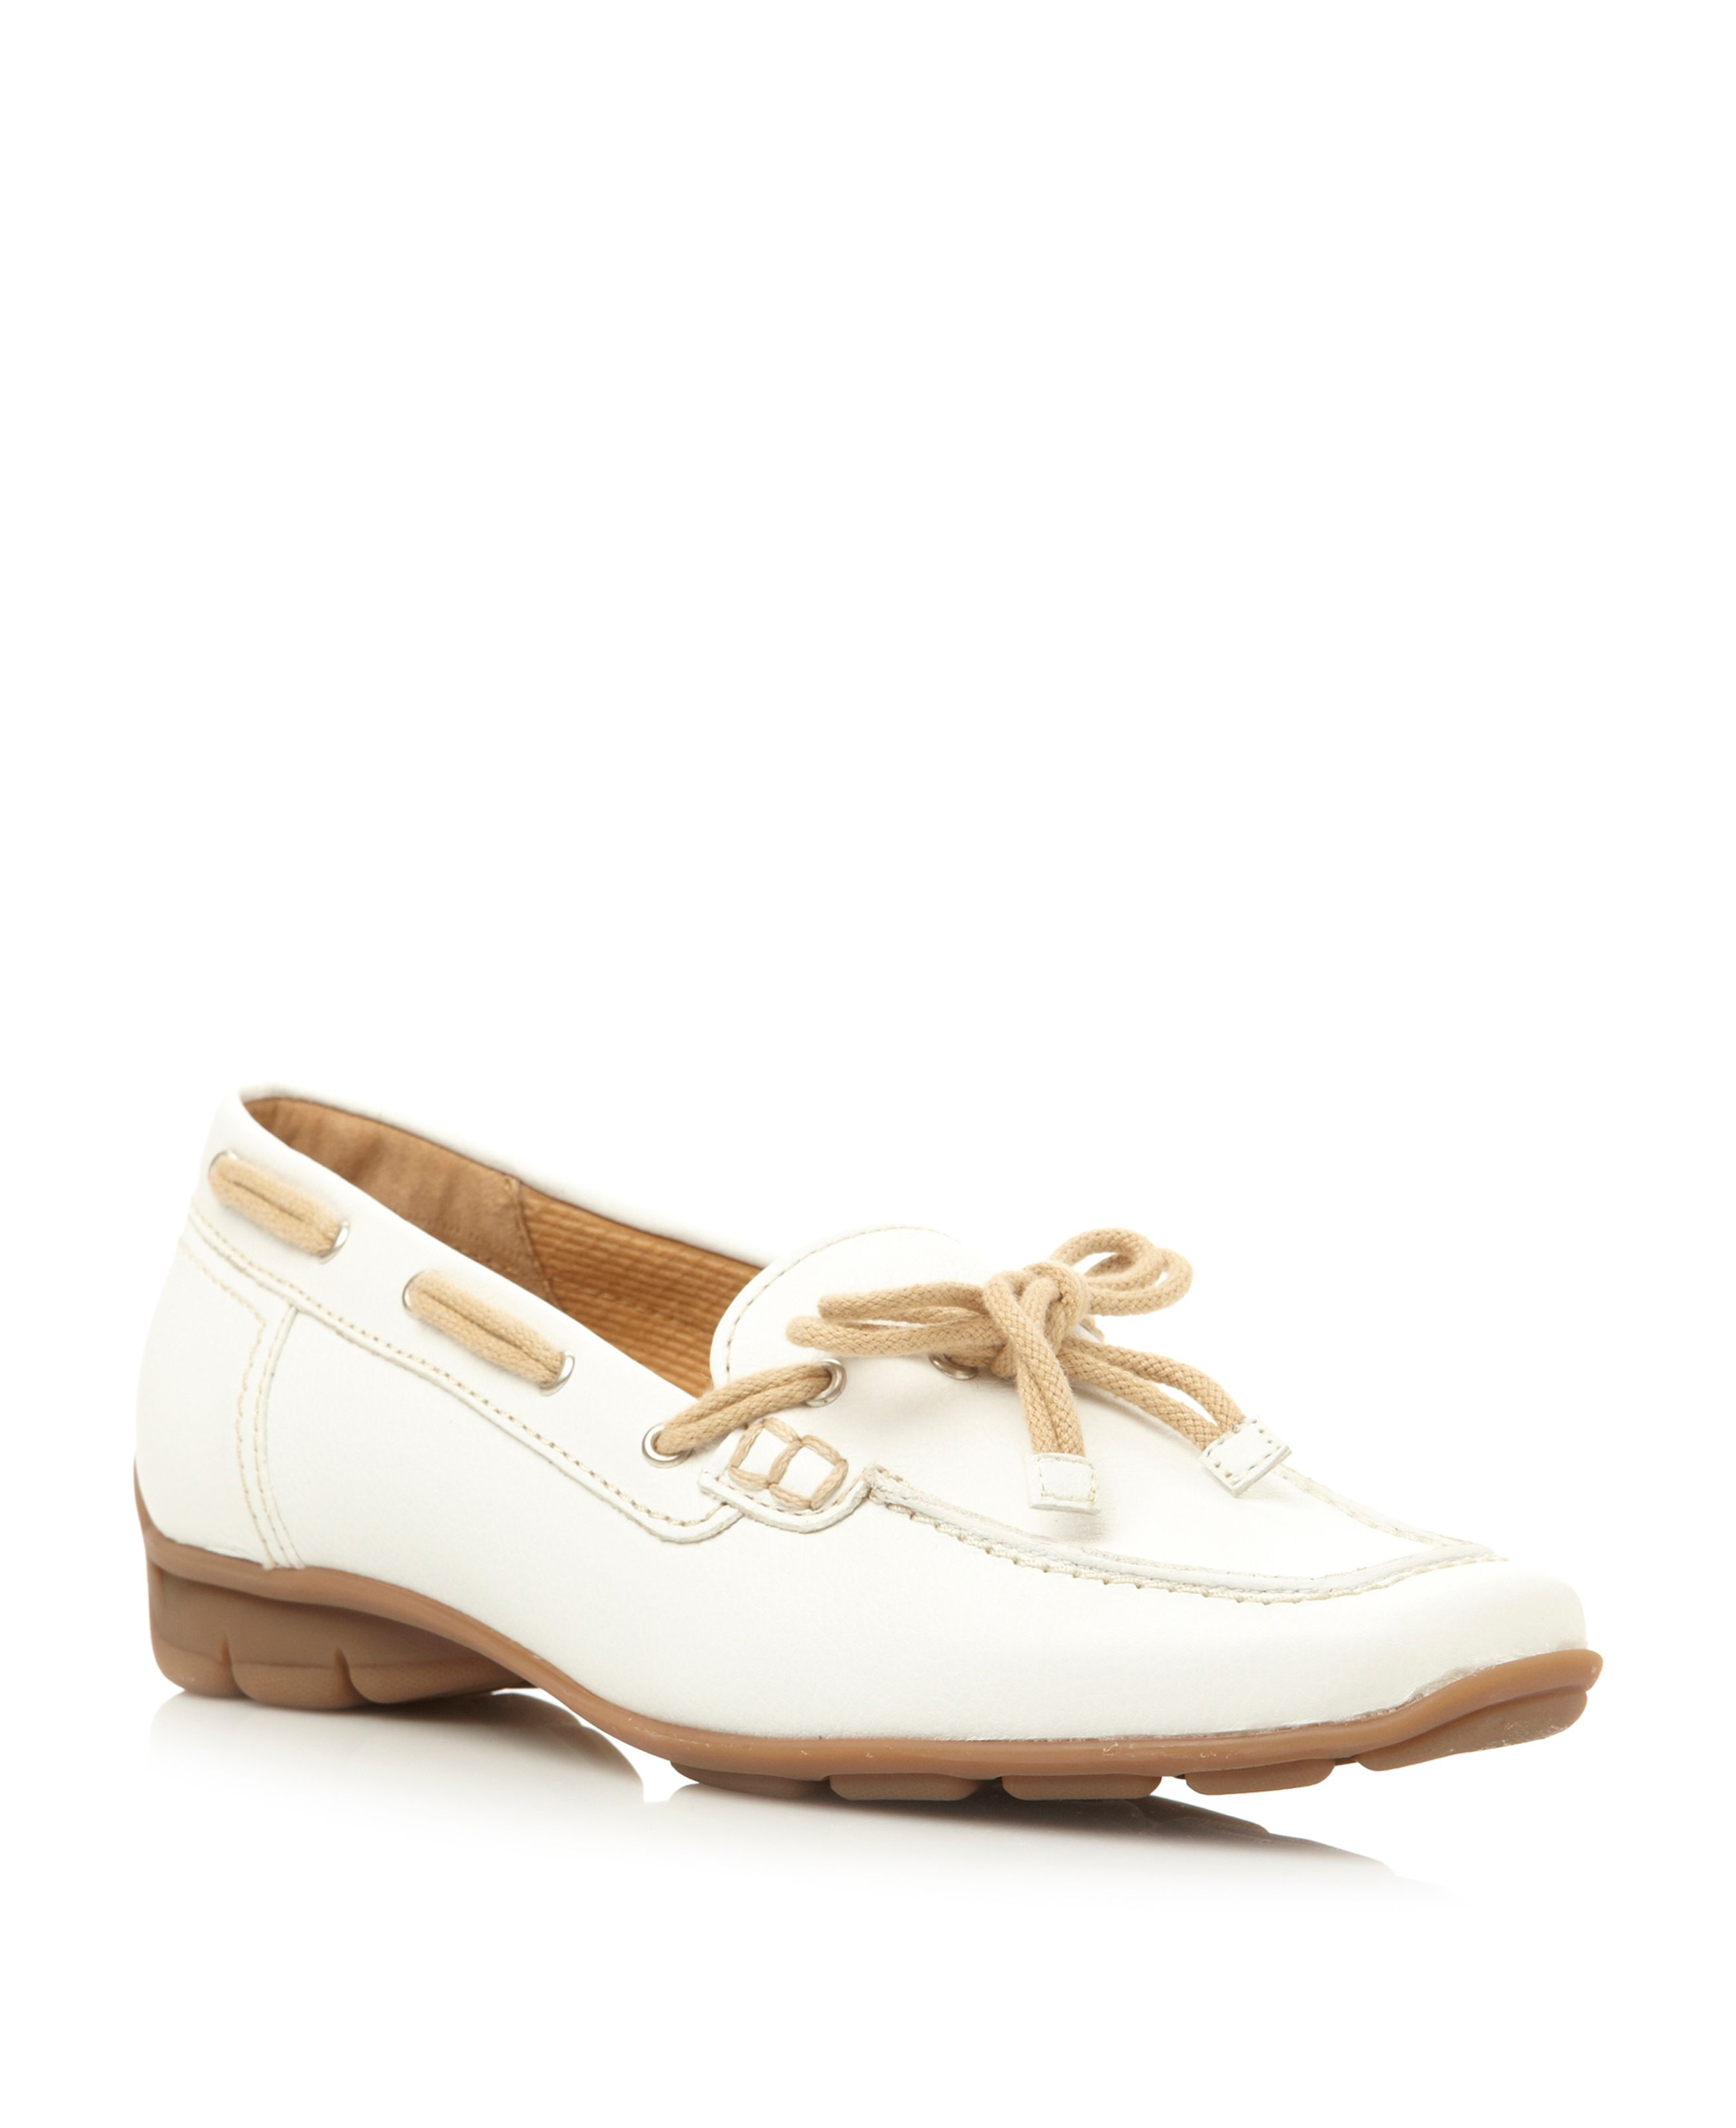 Obern round toe flat lace loafer shoes